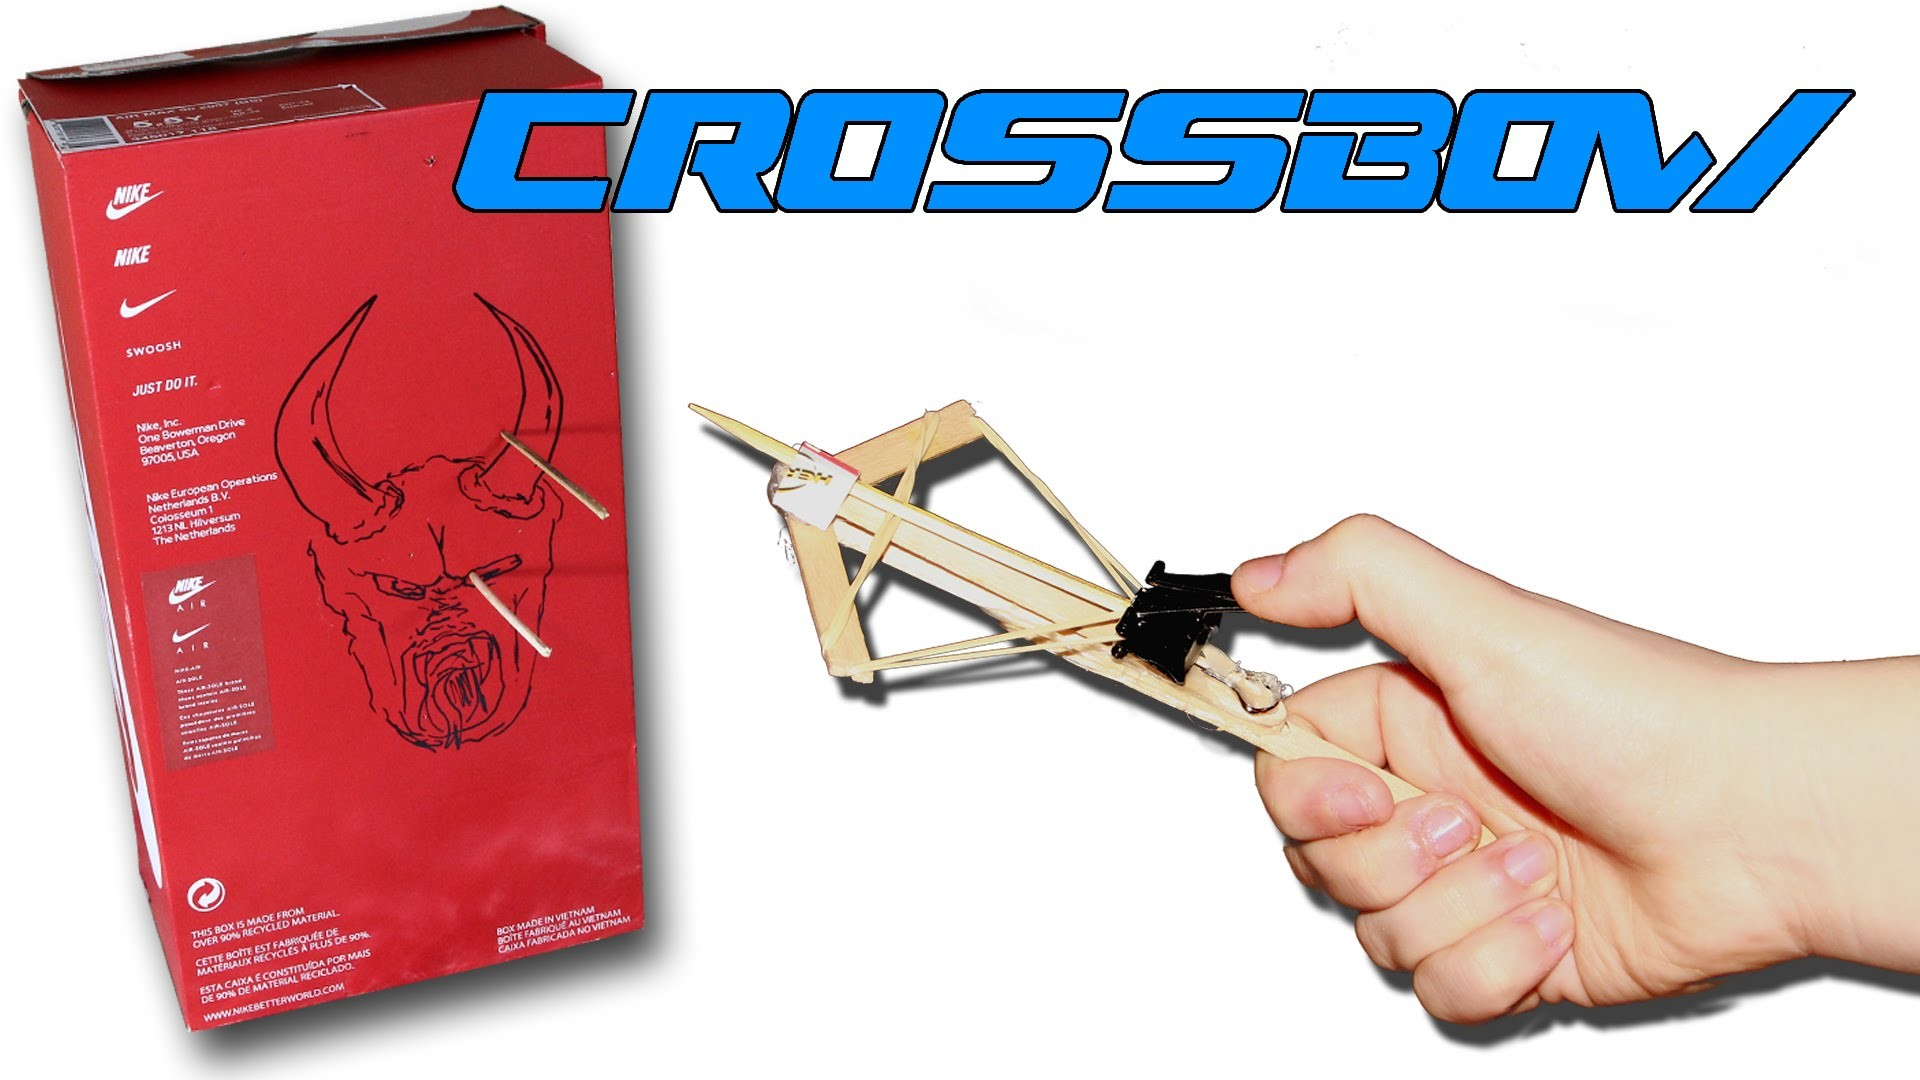 How to Make An Easy Crossbow